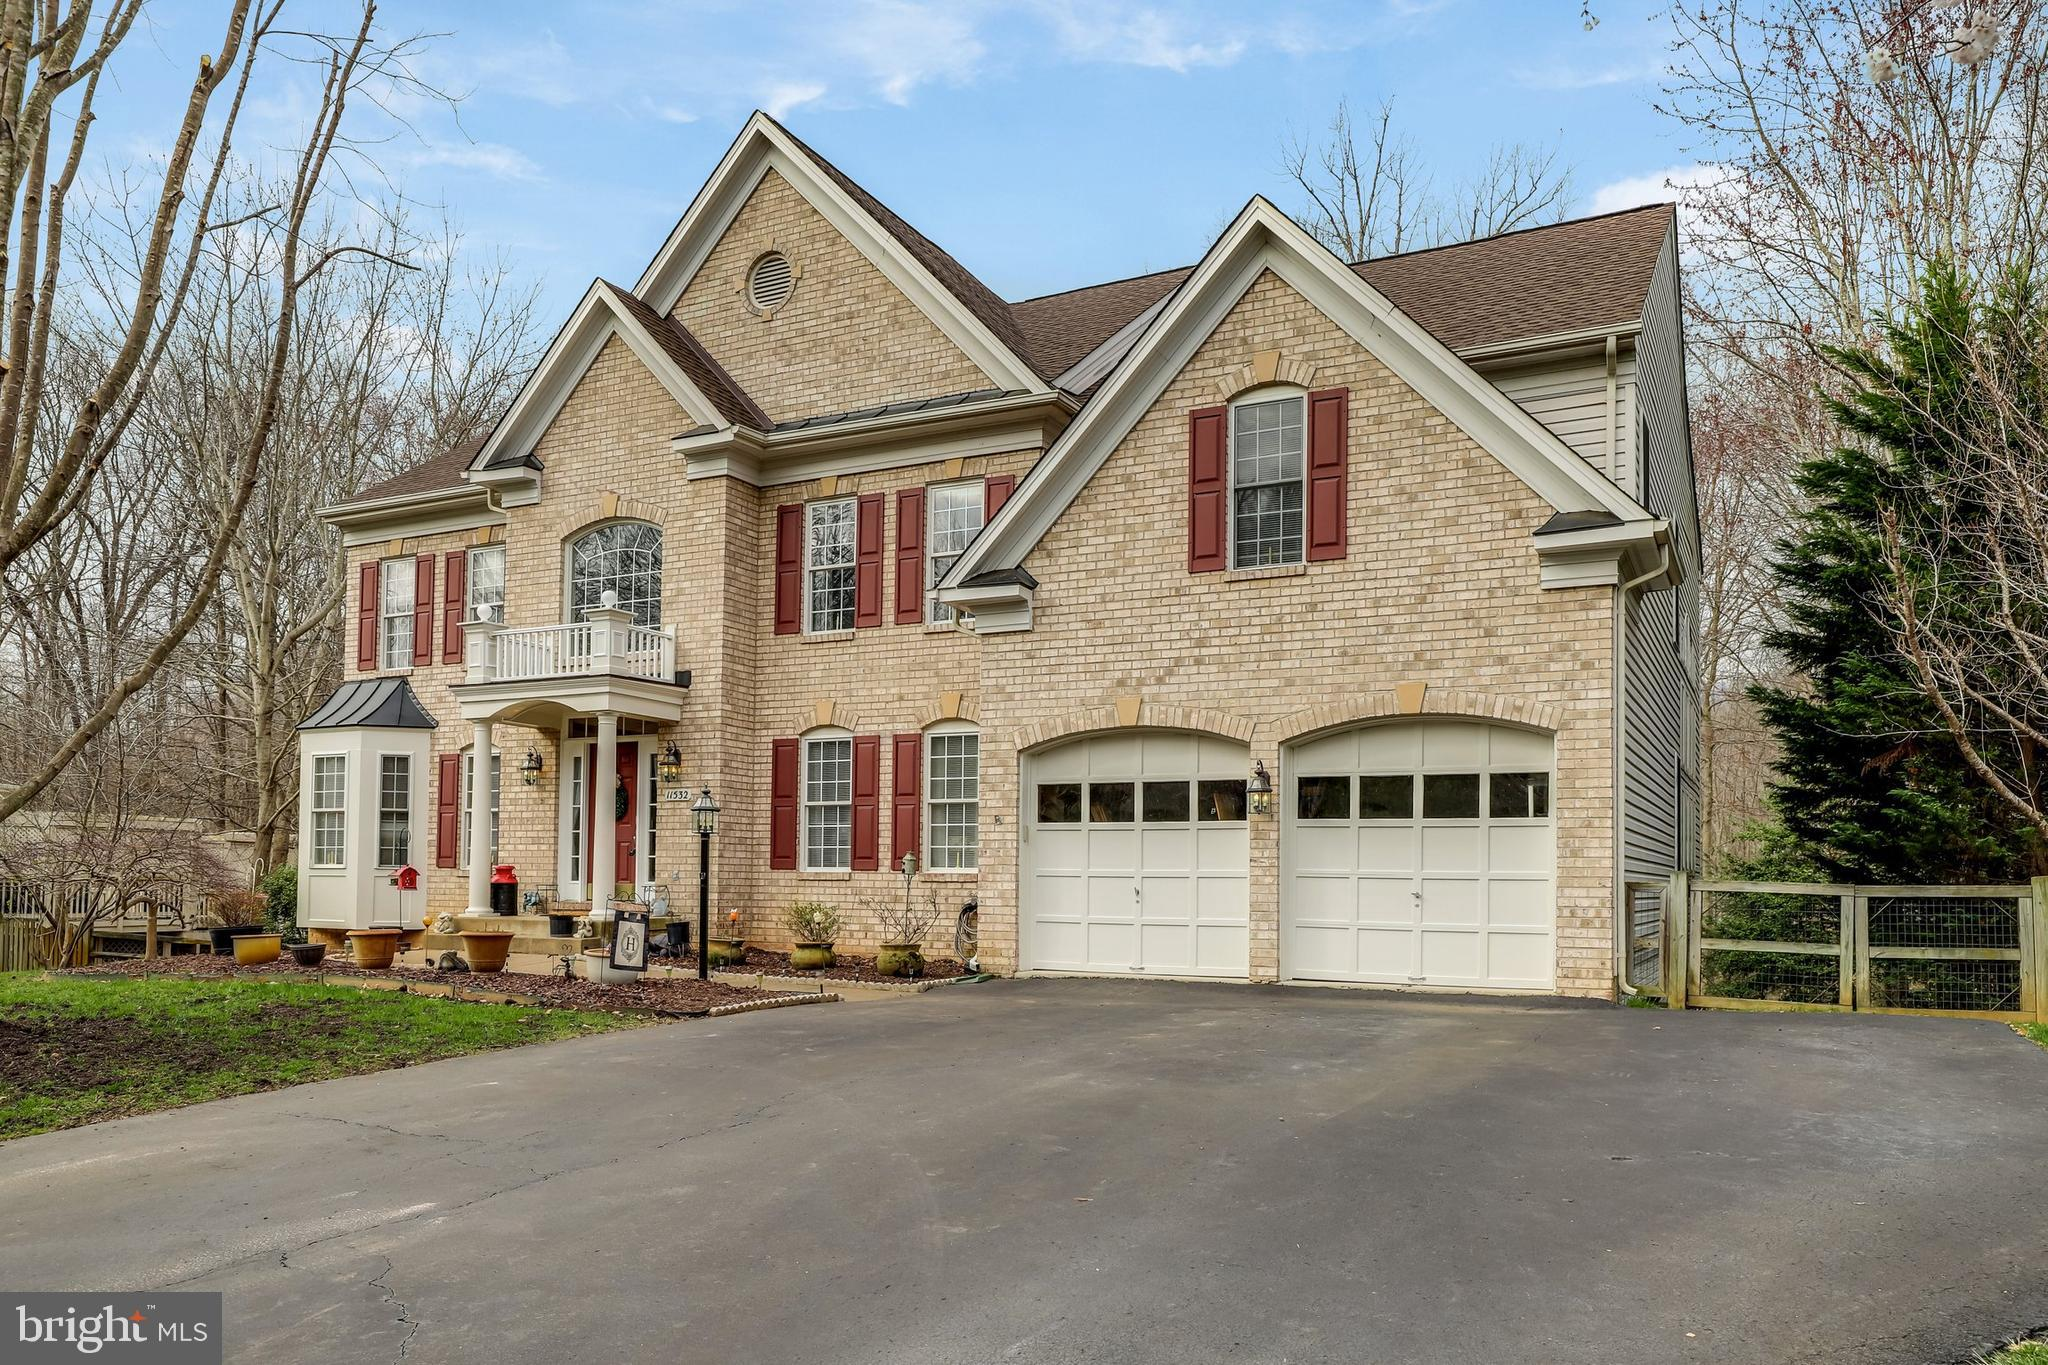 11532 SUMMIT RIDGE COURT, MANASSAS, VA 20112